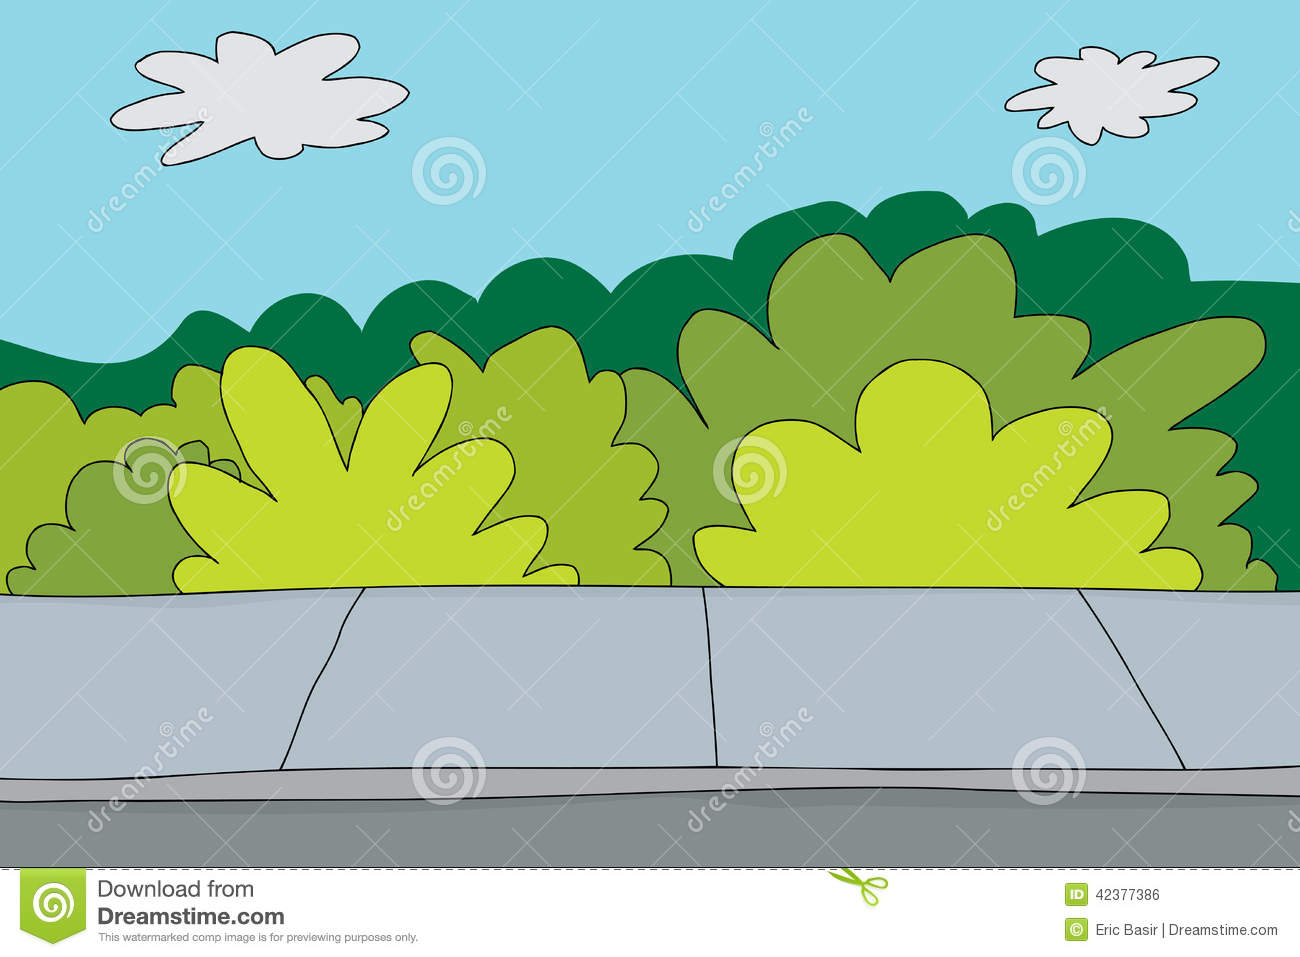 Sidewalk clipart Sidewalk Clipart Clipart Sidewalk Download